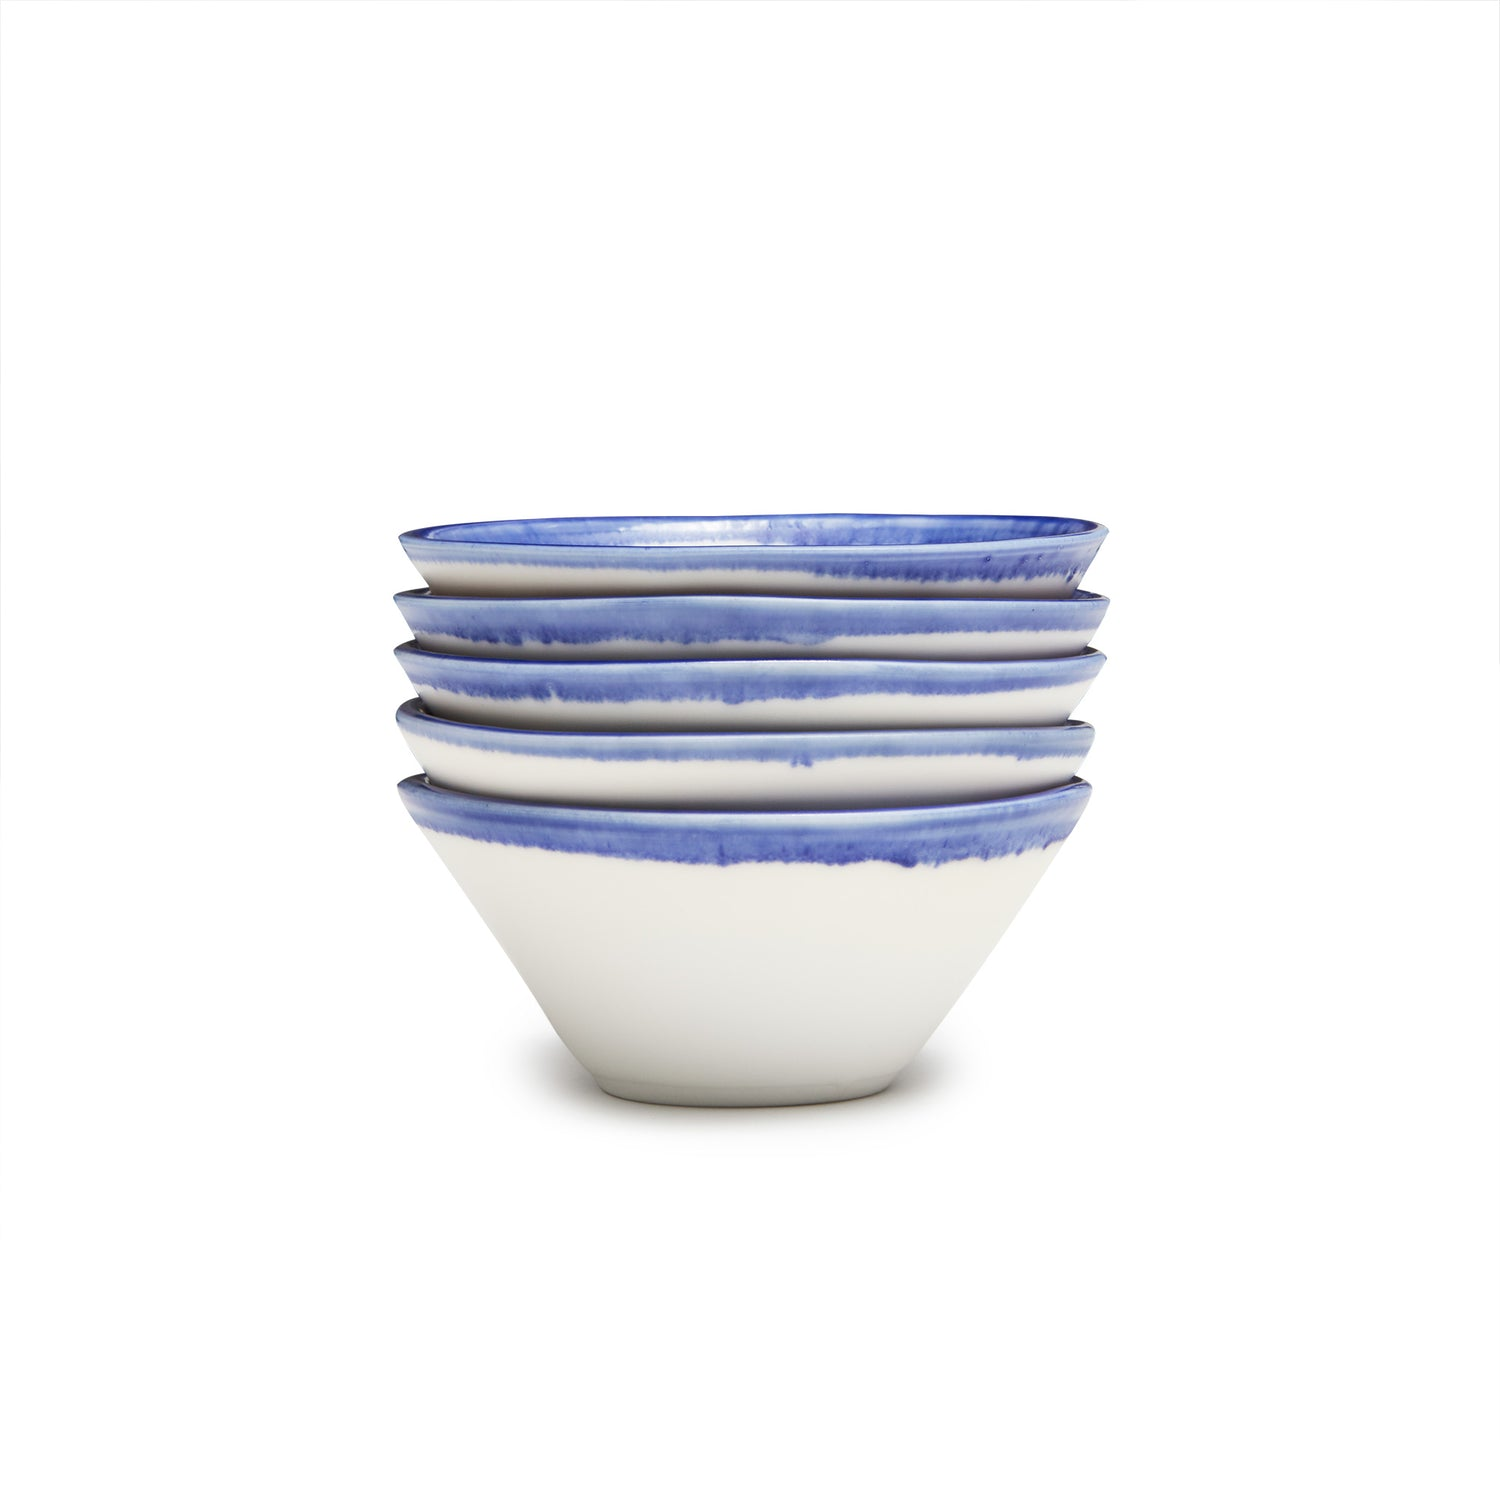 Sm. Lexington Bowl- Blue Banded Rim